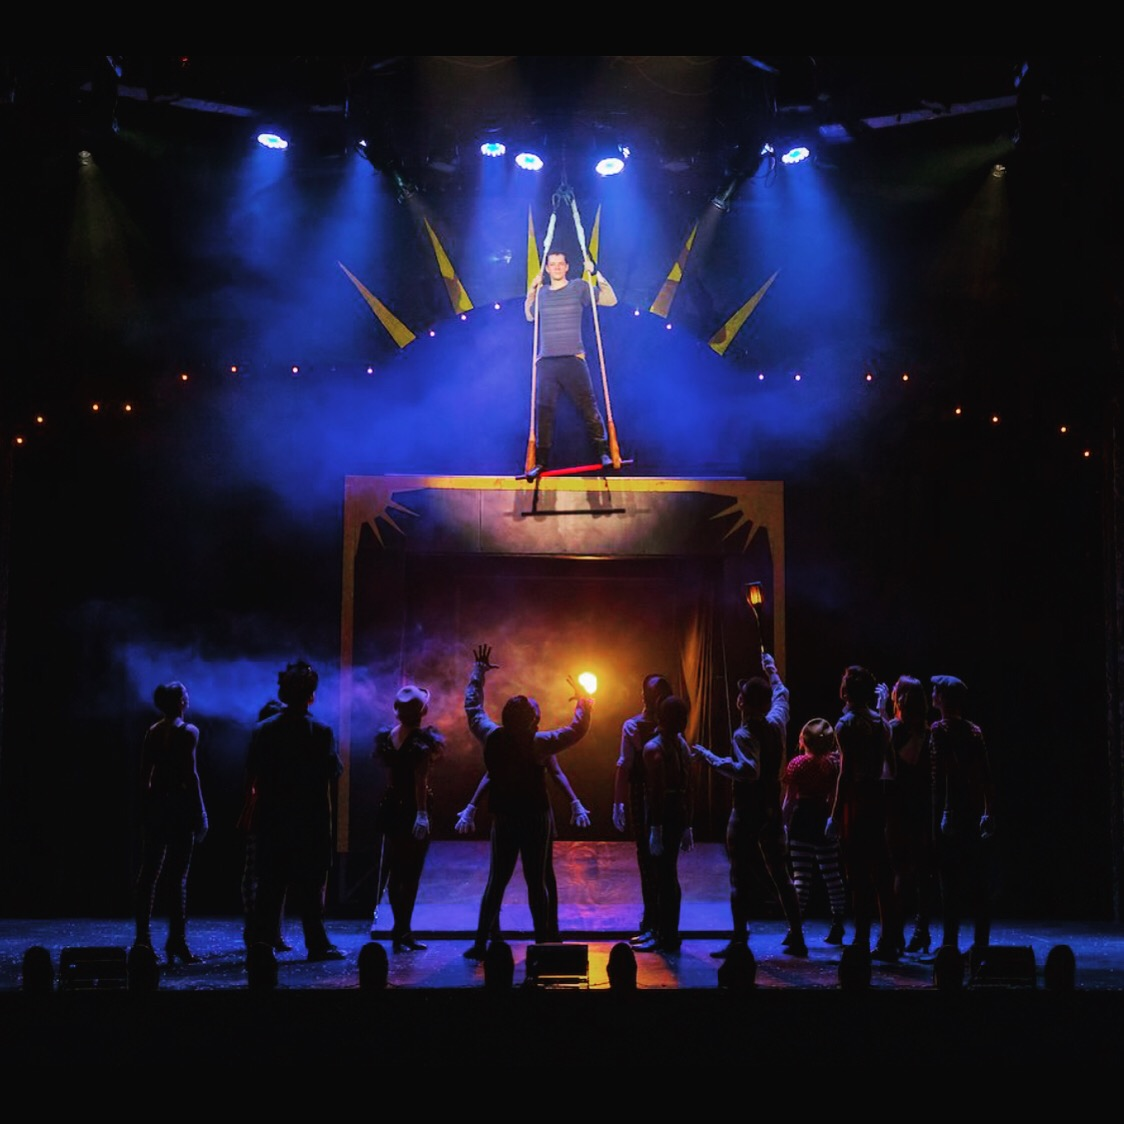 "The Reviews are in for ""PIPPIN"" at Short North Stage - The Columbus Dispatch's Michael Grossberg states that ""New York actor Corbin Payne emotionally anchored the story as the hopeful title character. Payne, a haunting singer in ""Corner of the Sky"" and ""Morning Glow,"" makes Pippin's yearnings palpable, and thereby makes him real, even when the script pushes the character into contrivance."" Click here to read the full review!The Columbus Underground's Richard Sanford viewed the SNS production of Pippin as ""Riotous and Charming."" Claiming that ""Payne's Pippin is more a cipher compared to the antic fun bouncing around him…..Payne is a rock throughout, the solid base everything can spark off or leap from, making the most out of his earnest songs like ""Morning Glow"" and ""Corner of the Sky."" Click here to read the full review!"